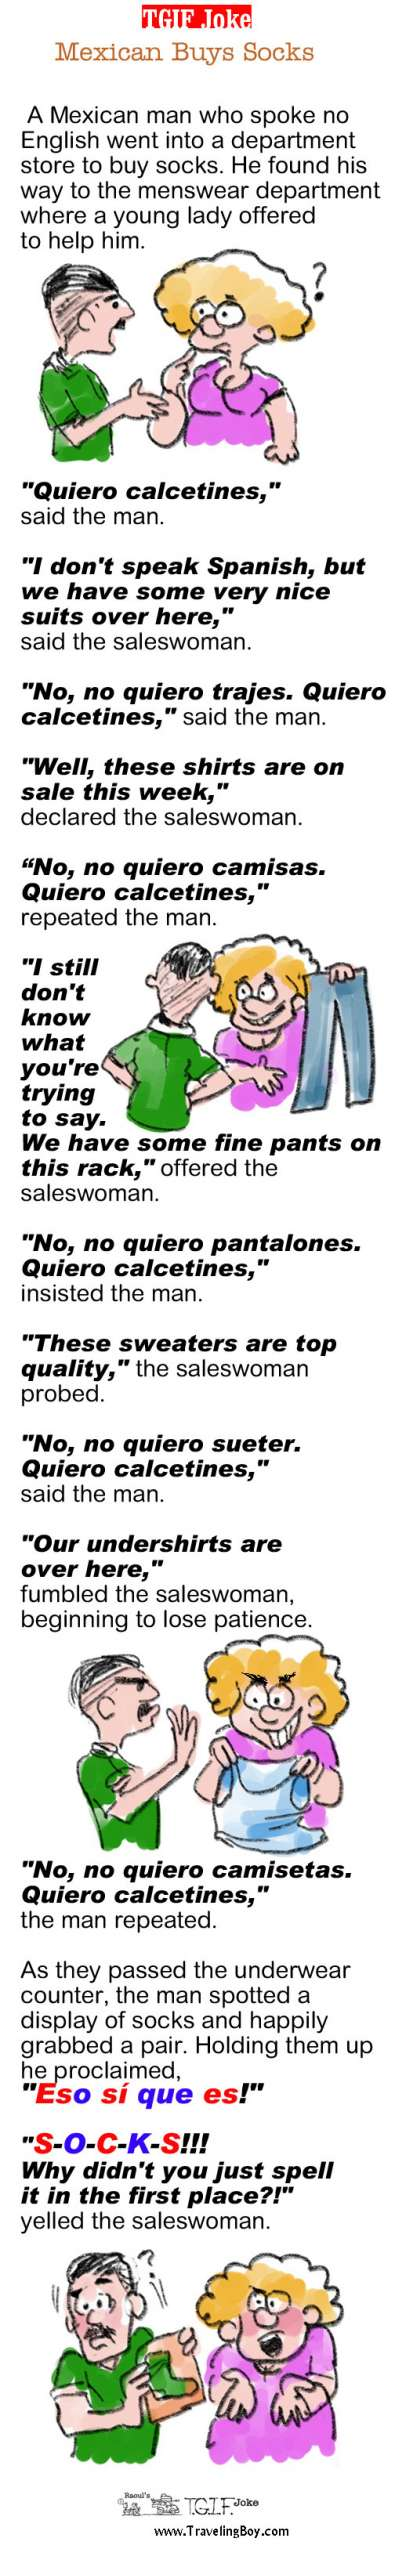 TGIF Joke of the Week: Mexican Buys Socks